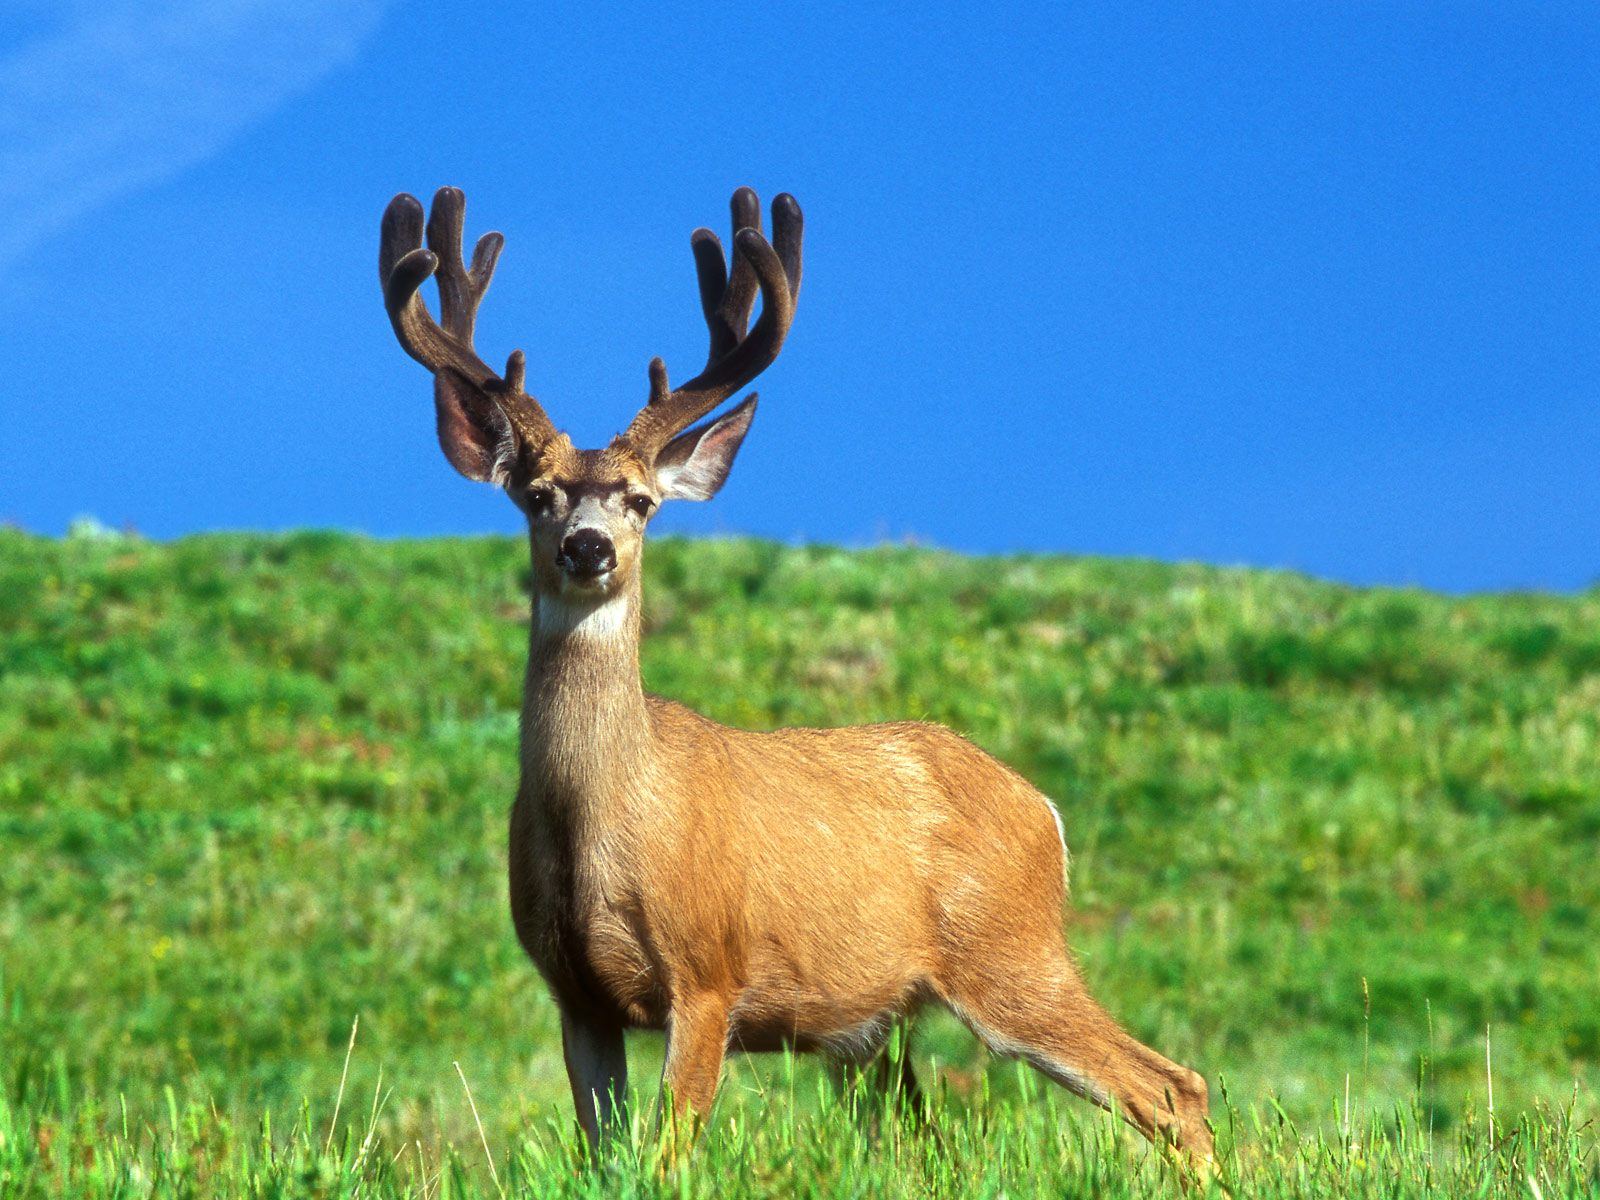 deer wallpaper for computerdeer pictures deer desktop wallpaperfree 1600x1200